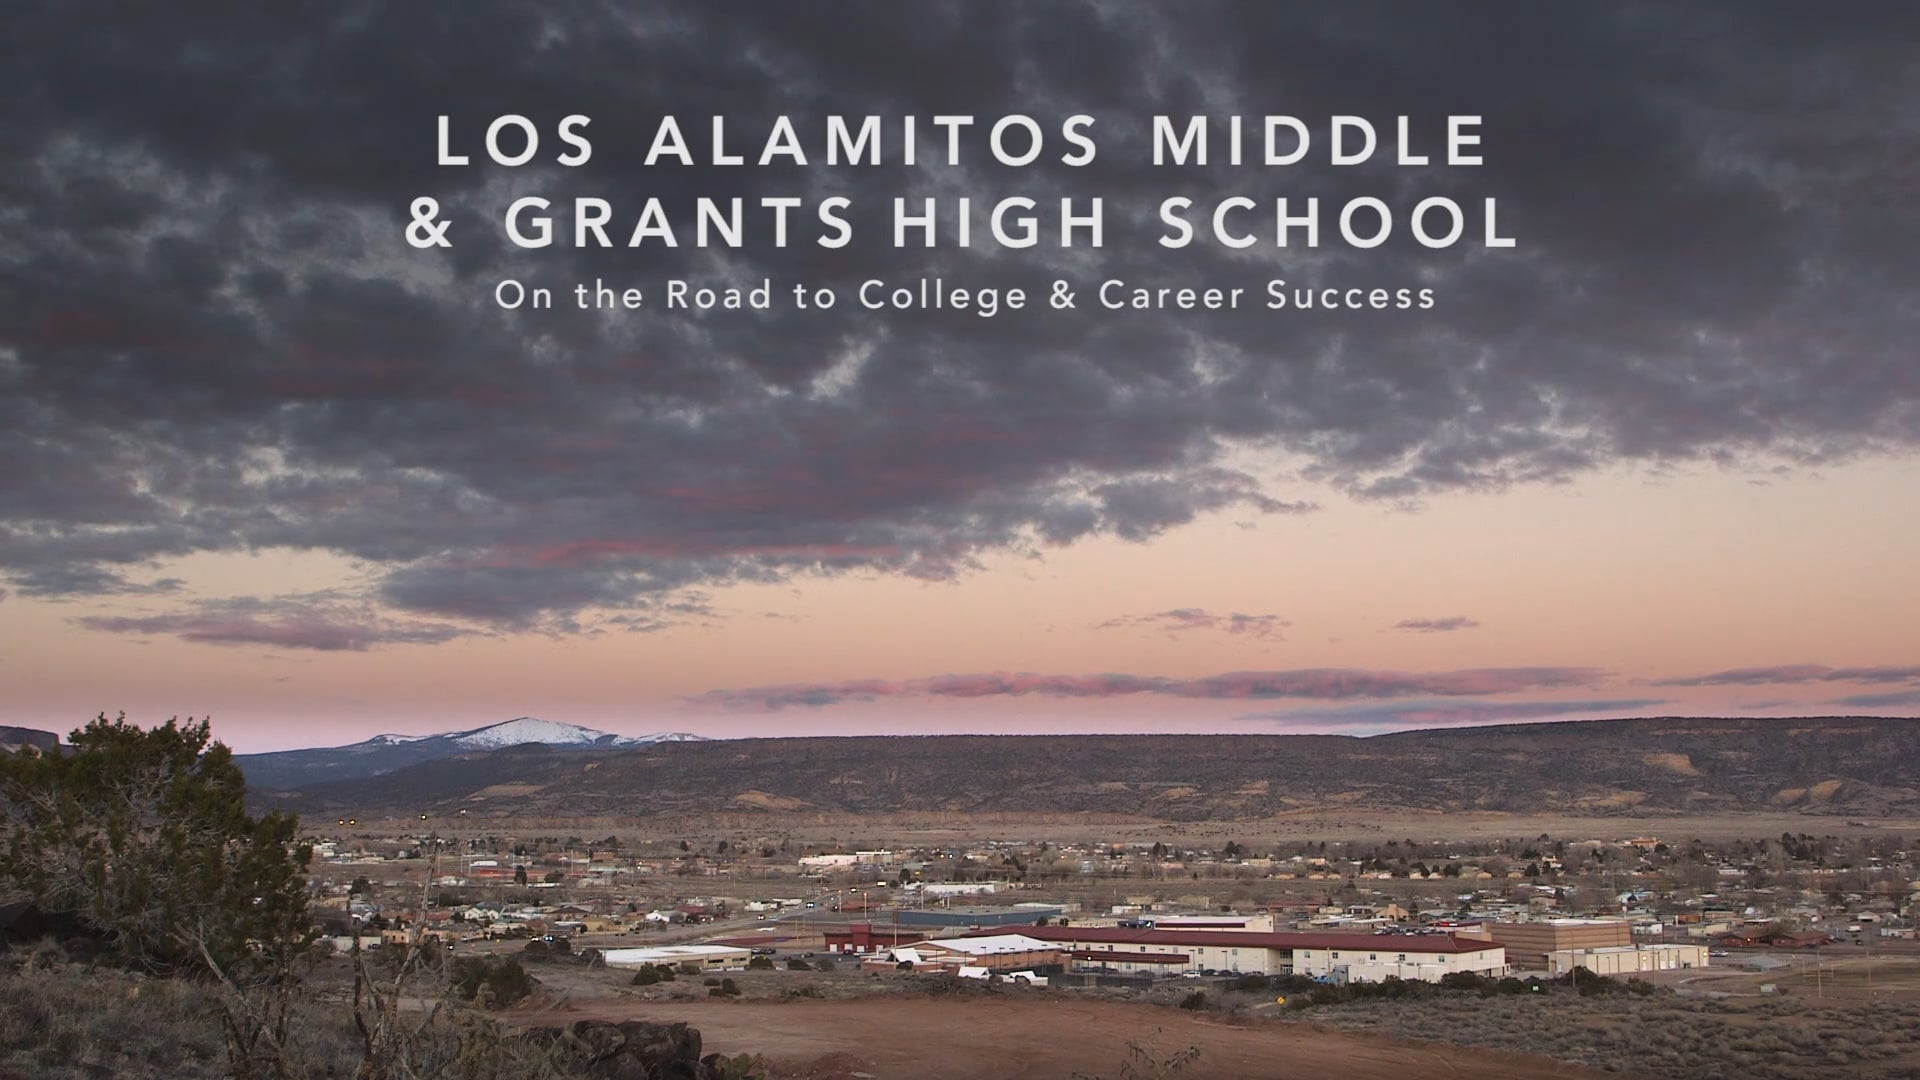 Los Alamitos Middle & Grants High School: On the Road to College & Career Success